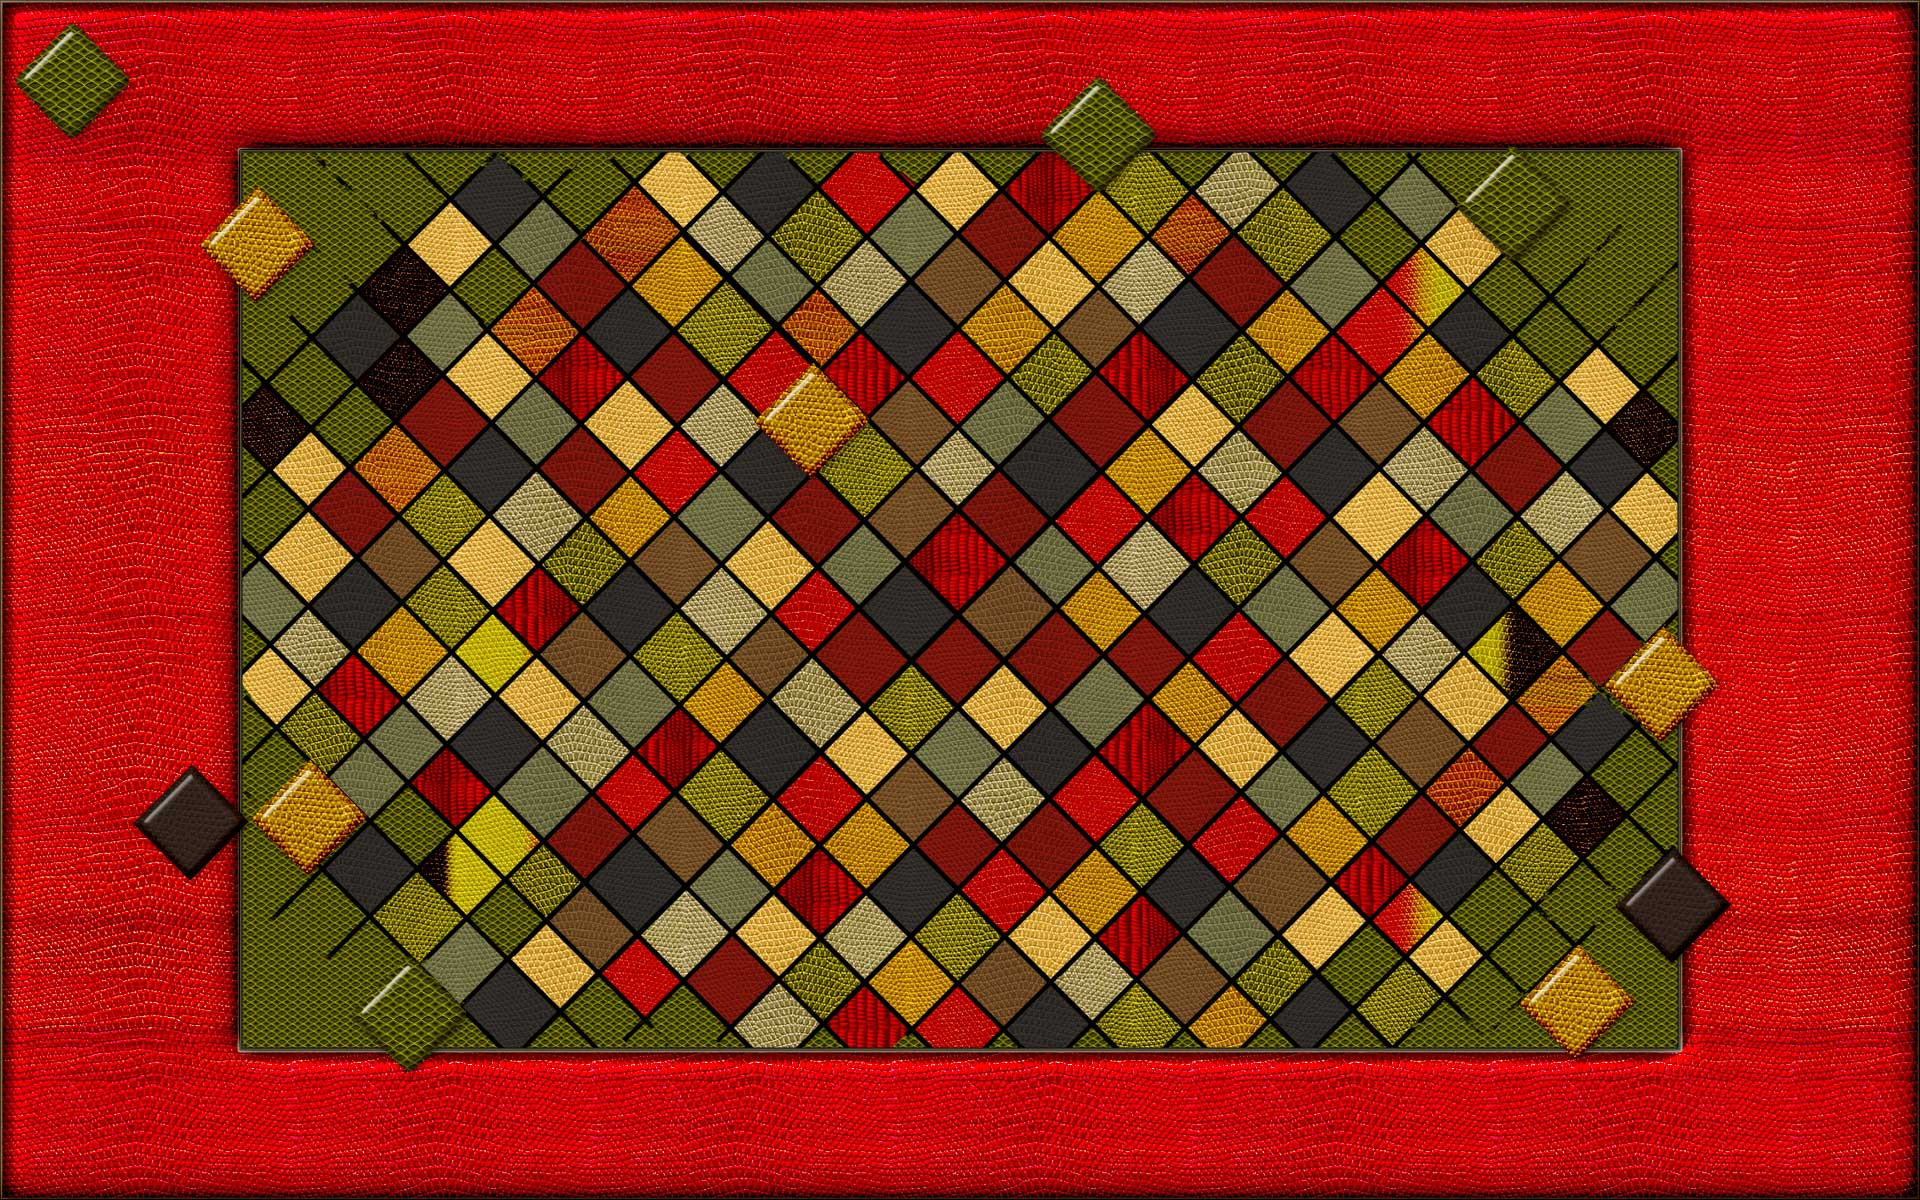 47 Quilt Wallpaper And Backgrounds On Wallpapersafari